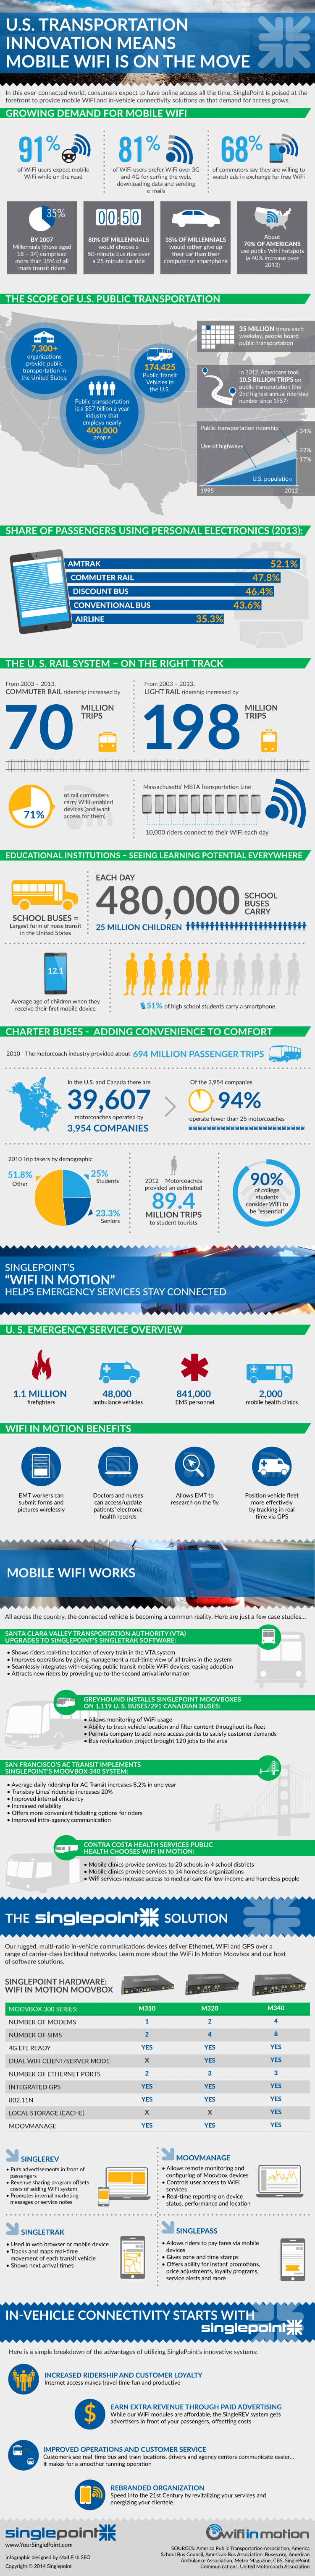 Mobile WiFi Infographic